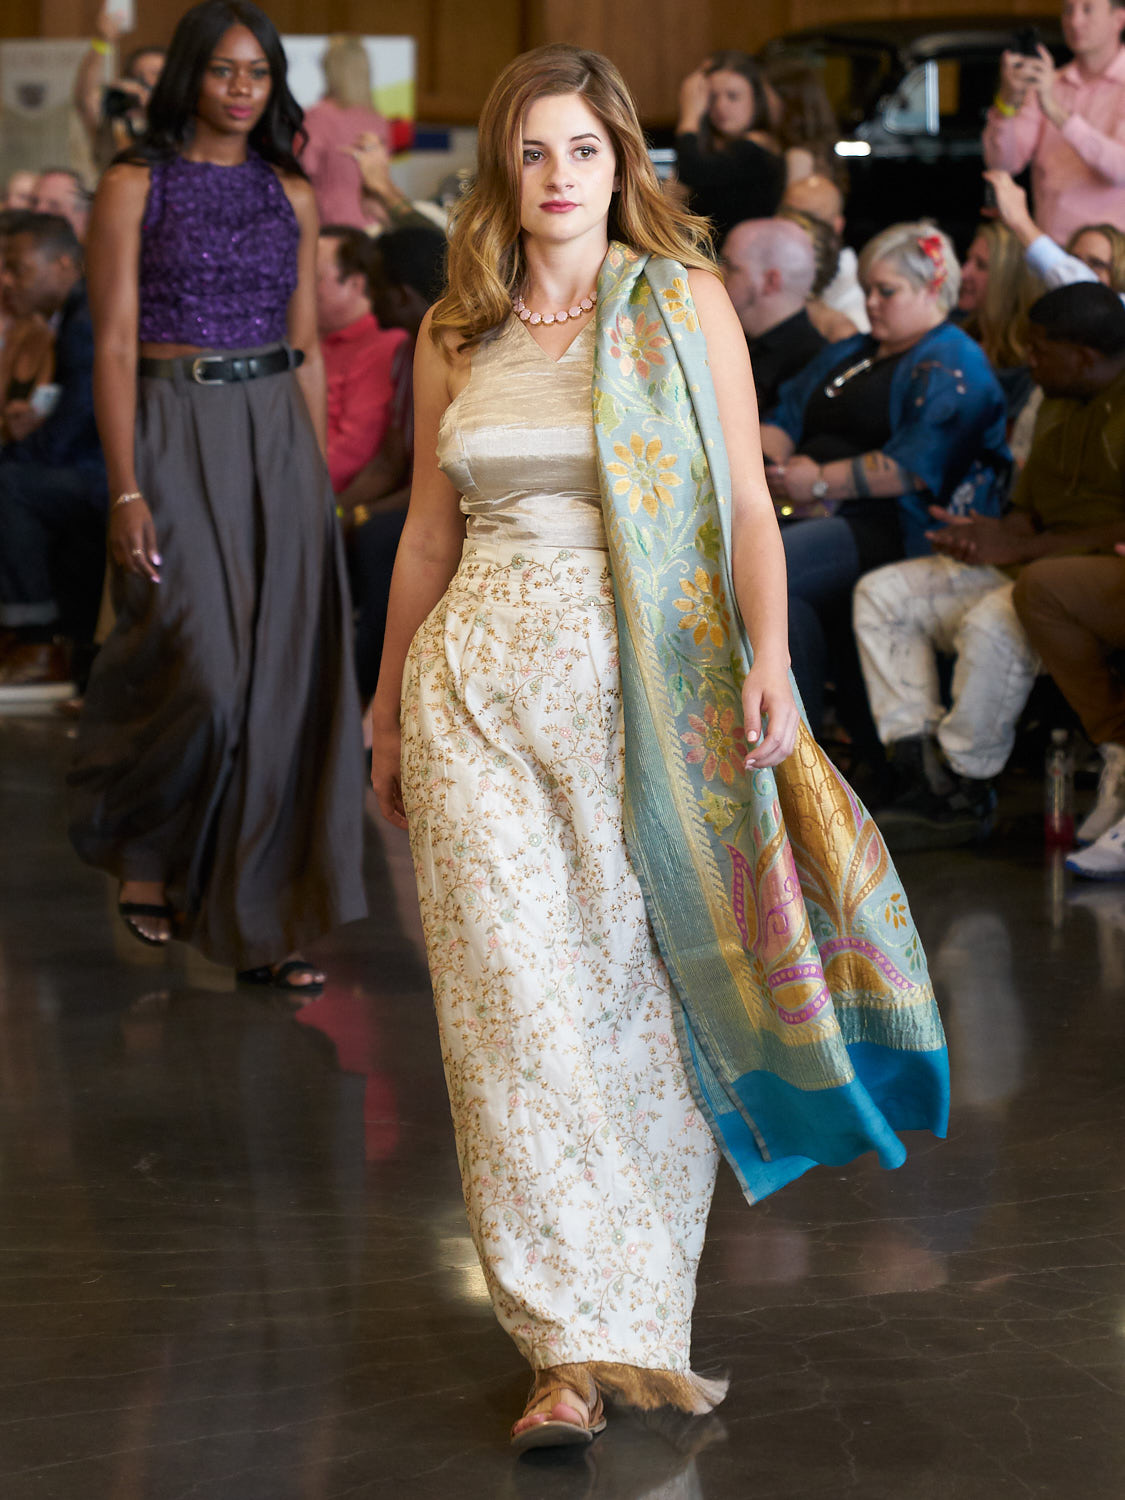 AMVISUALS-Couture-Cars-Fashion-Show-LeMay-Museum-Tacoma-Fashion-8.jpg